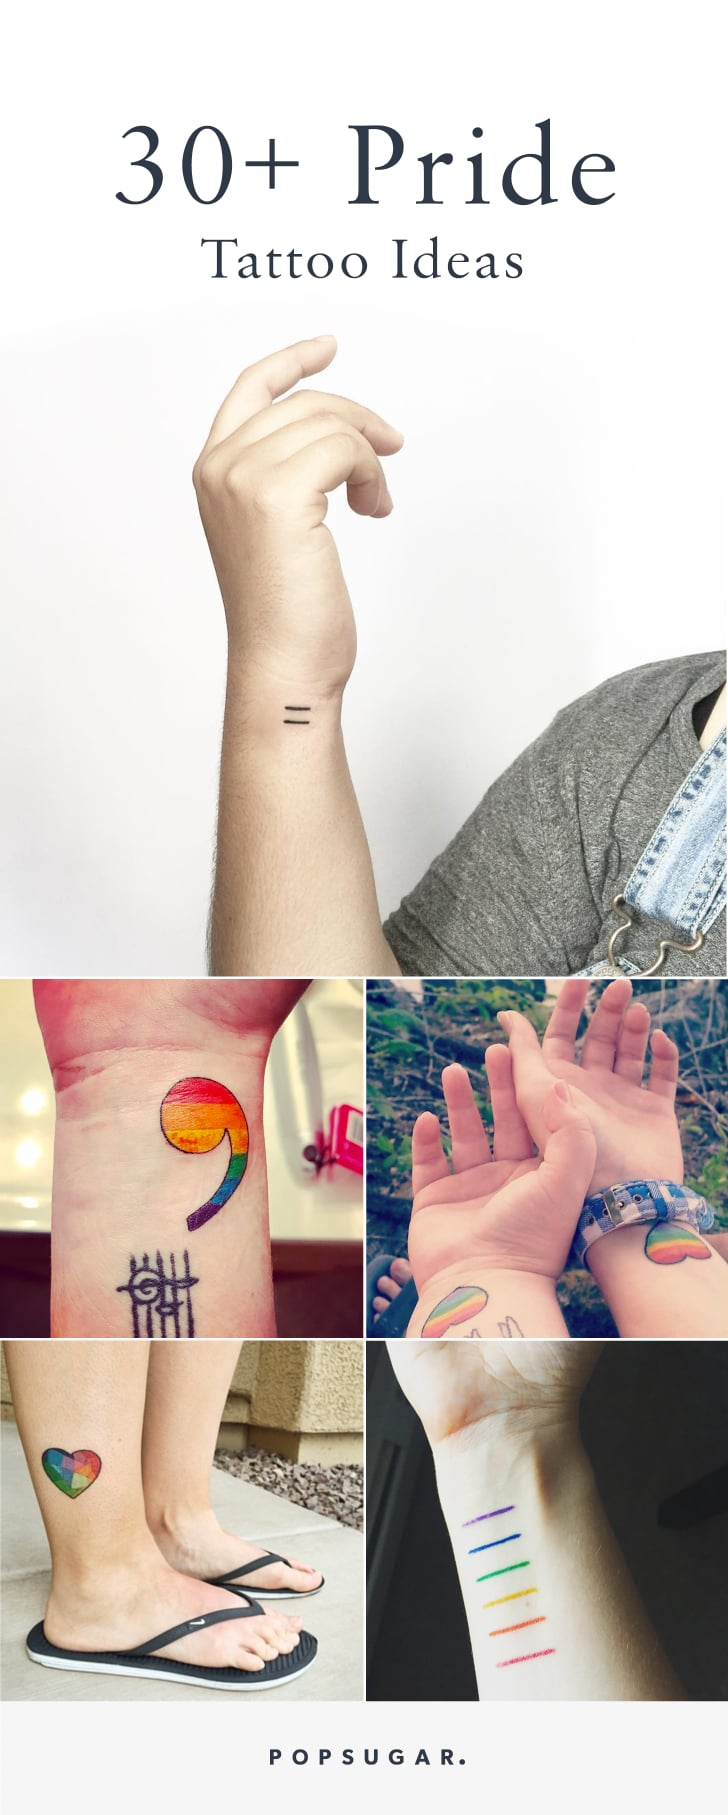 Gay Pride Tattoos Popsugar Australia Love Sex